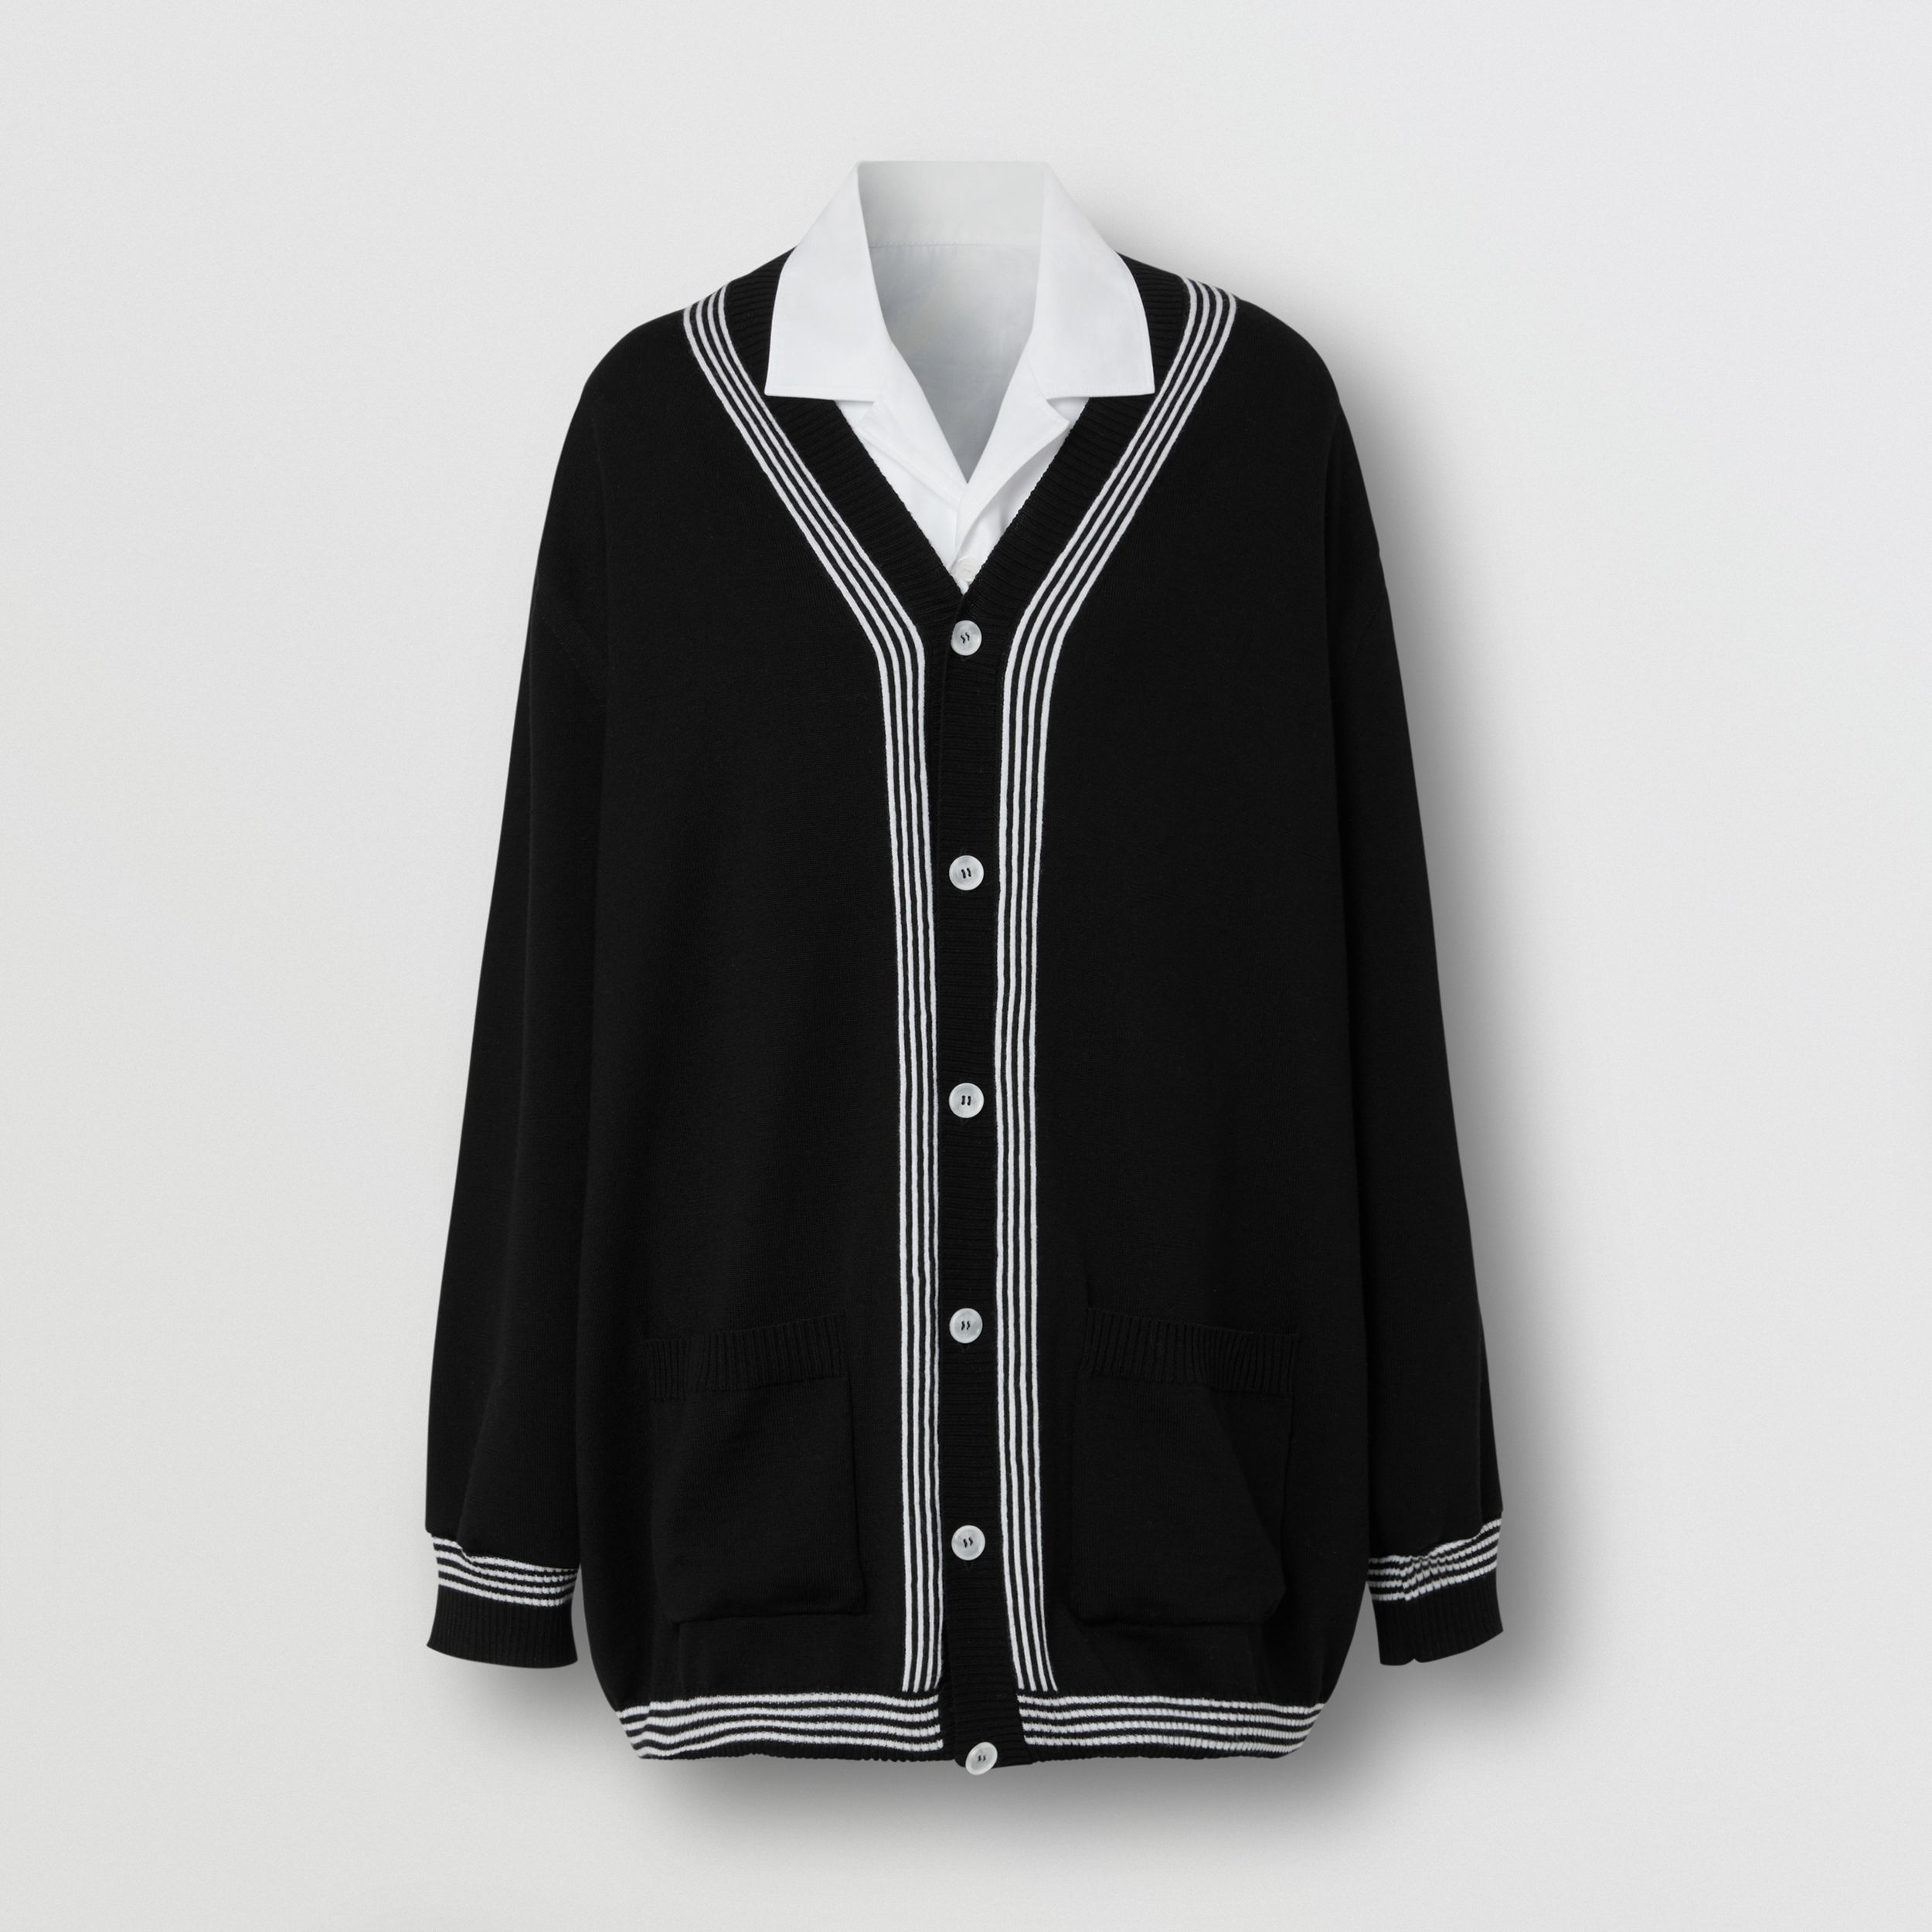 Wool Cardigan Detail Cotton Shirt in Black - Women | Burberry - 4